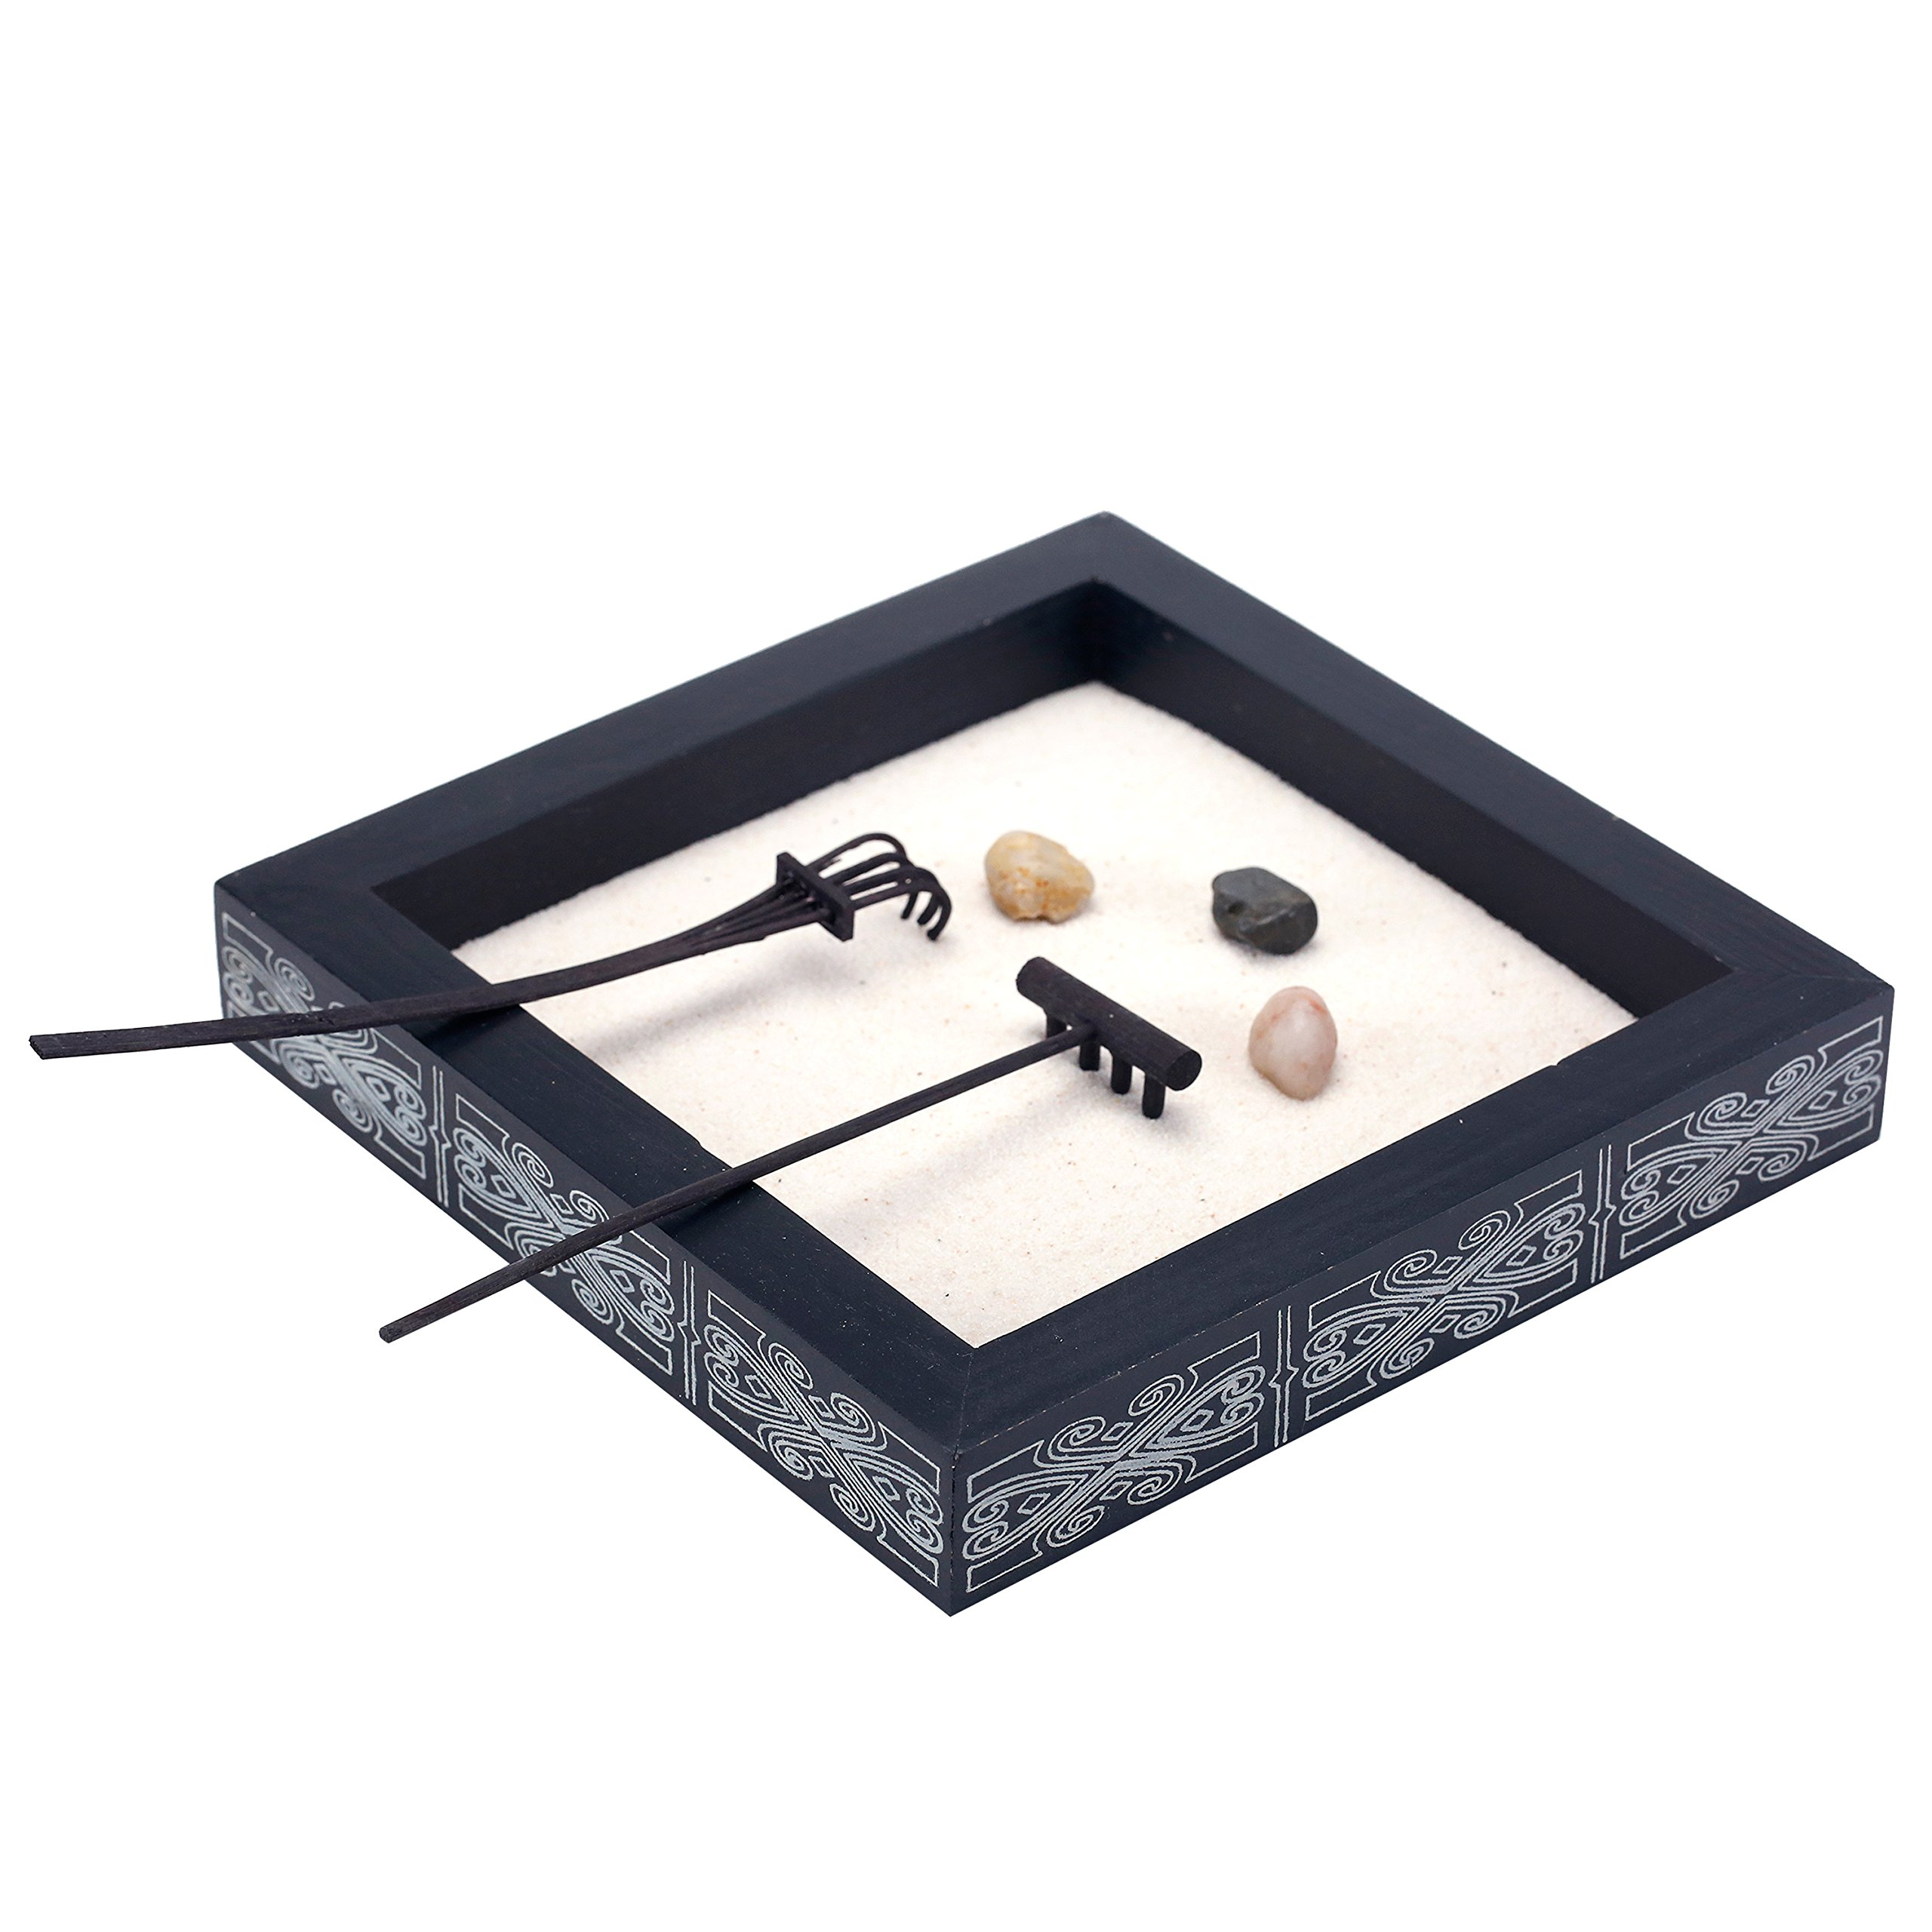 Minimalist Tabletop Zen Garden Kit with Stones and Rakes in Decorative Wood Black Box Tray